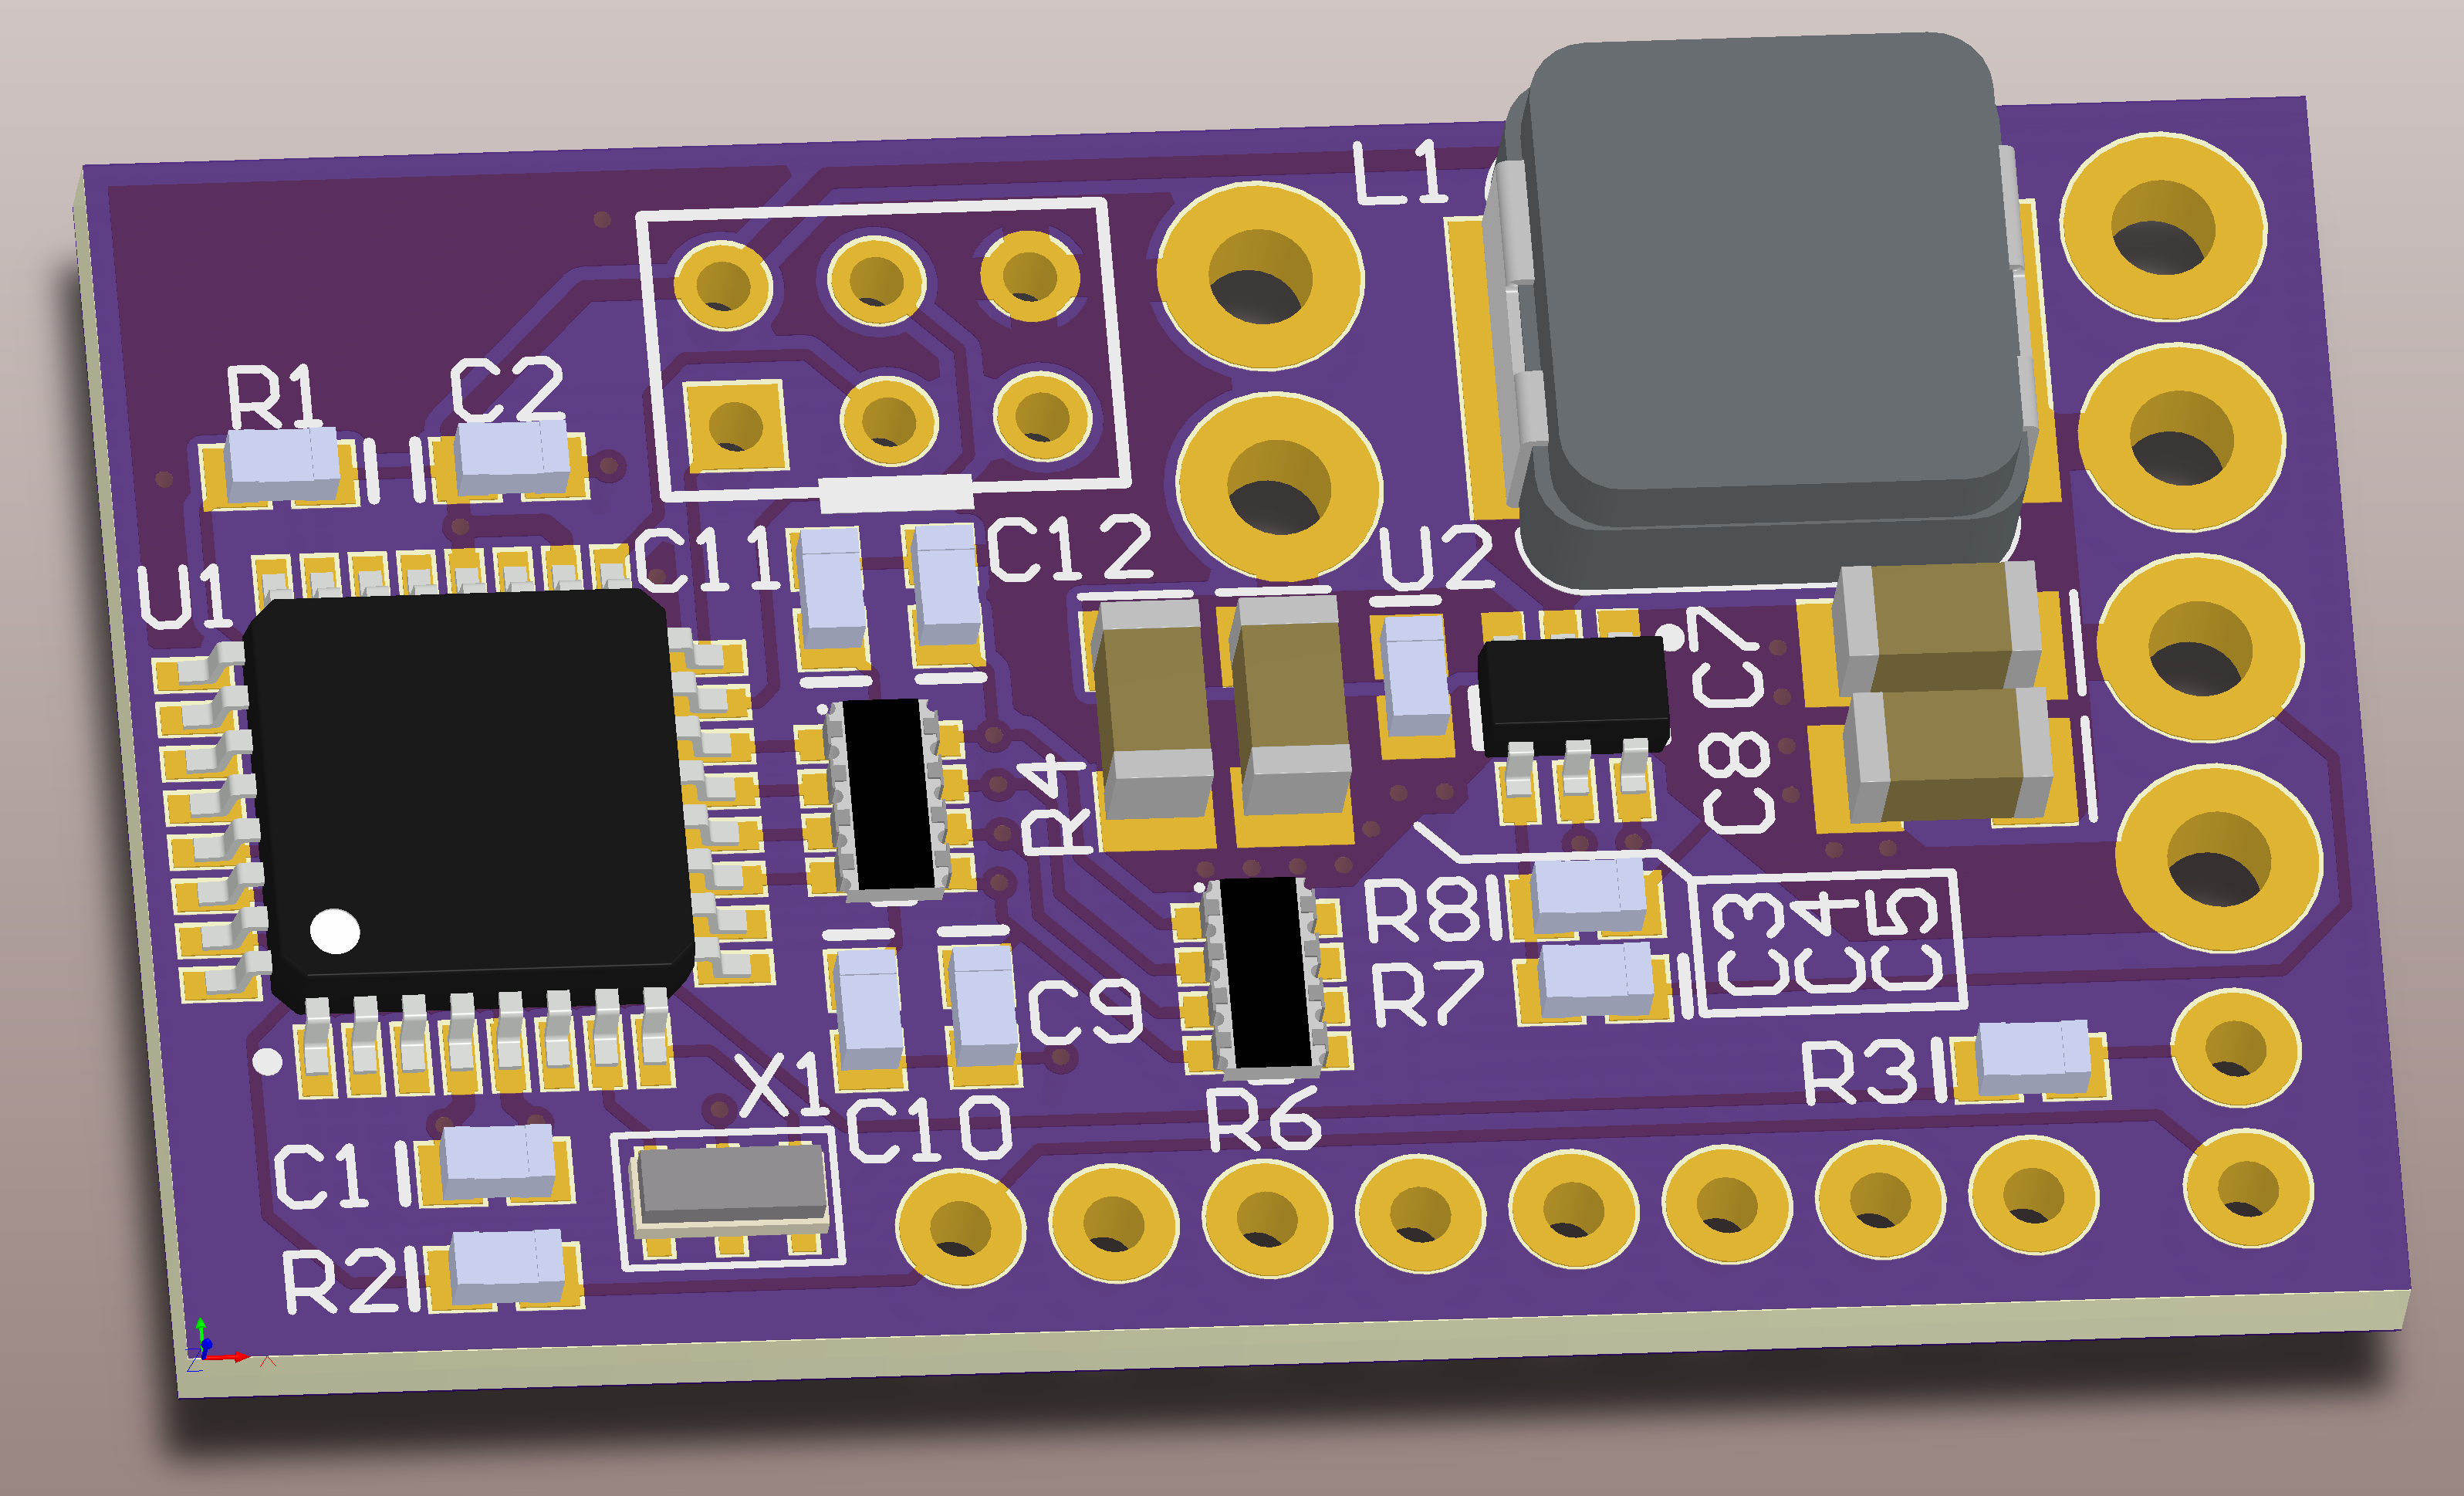 Rendering of populated PCB